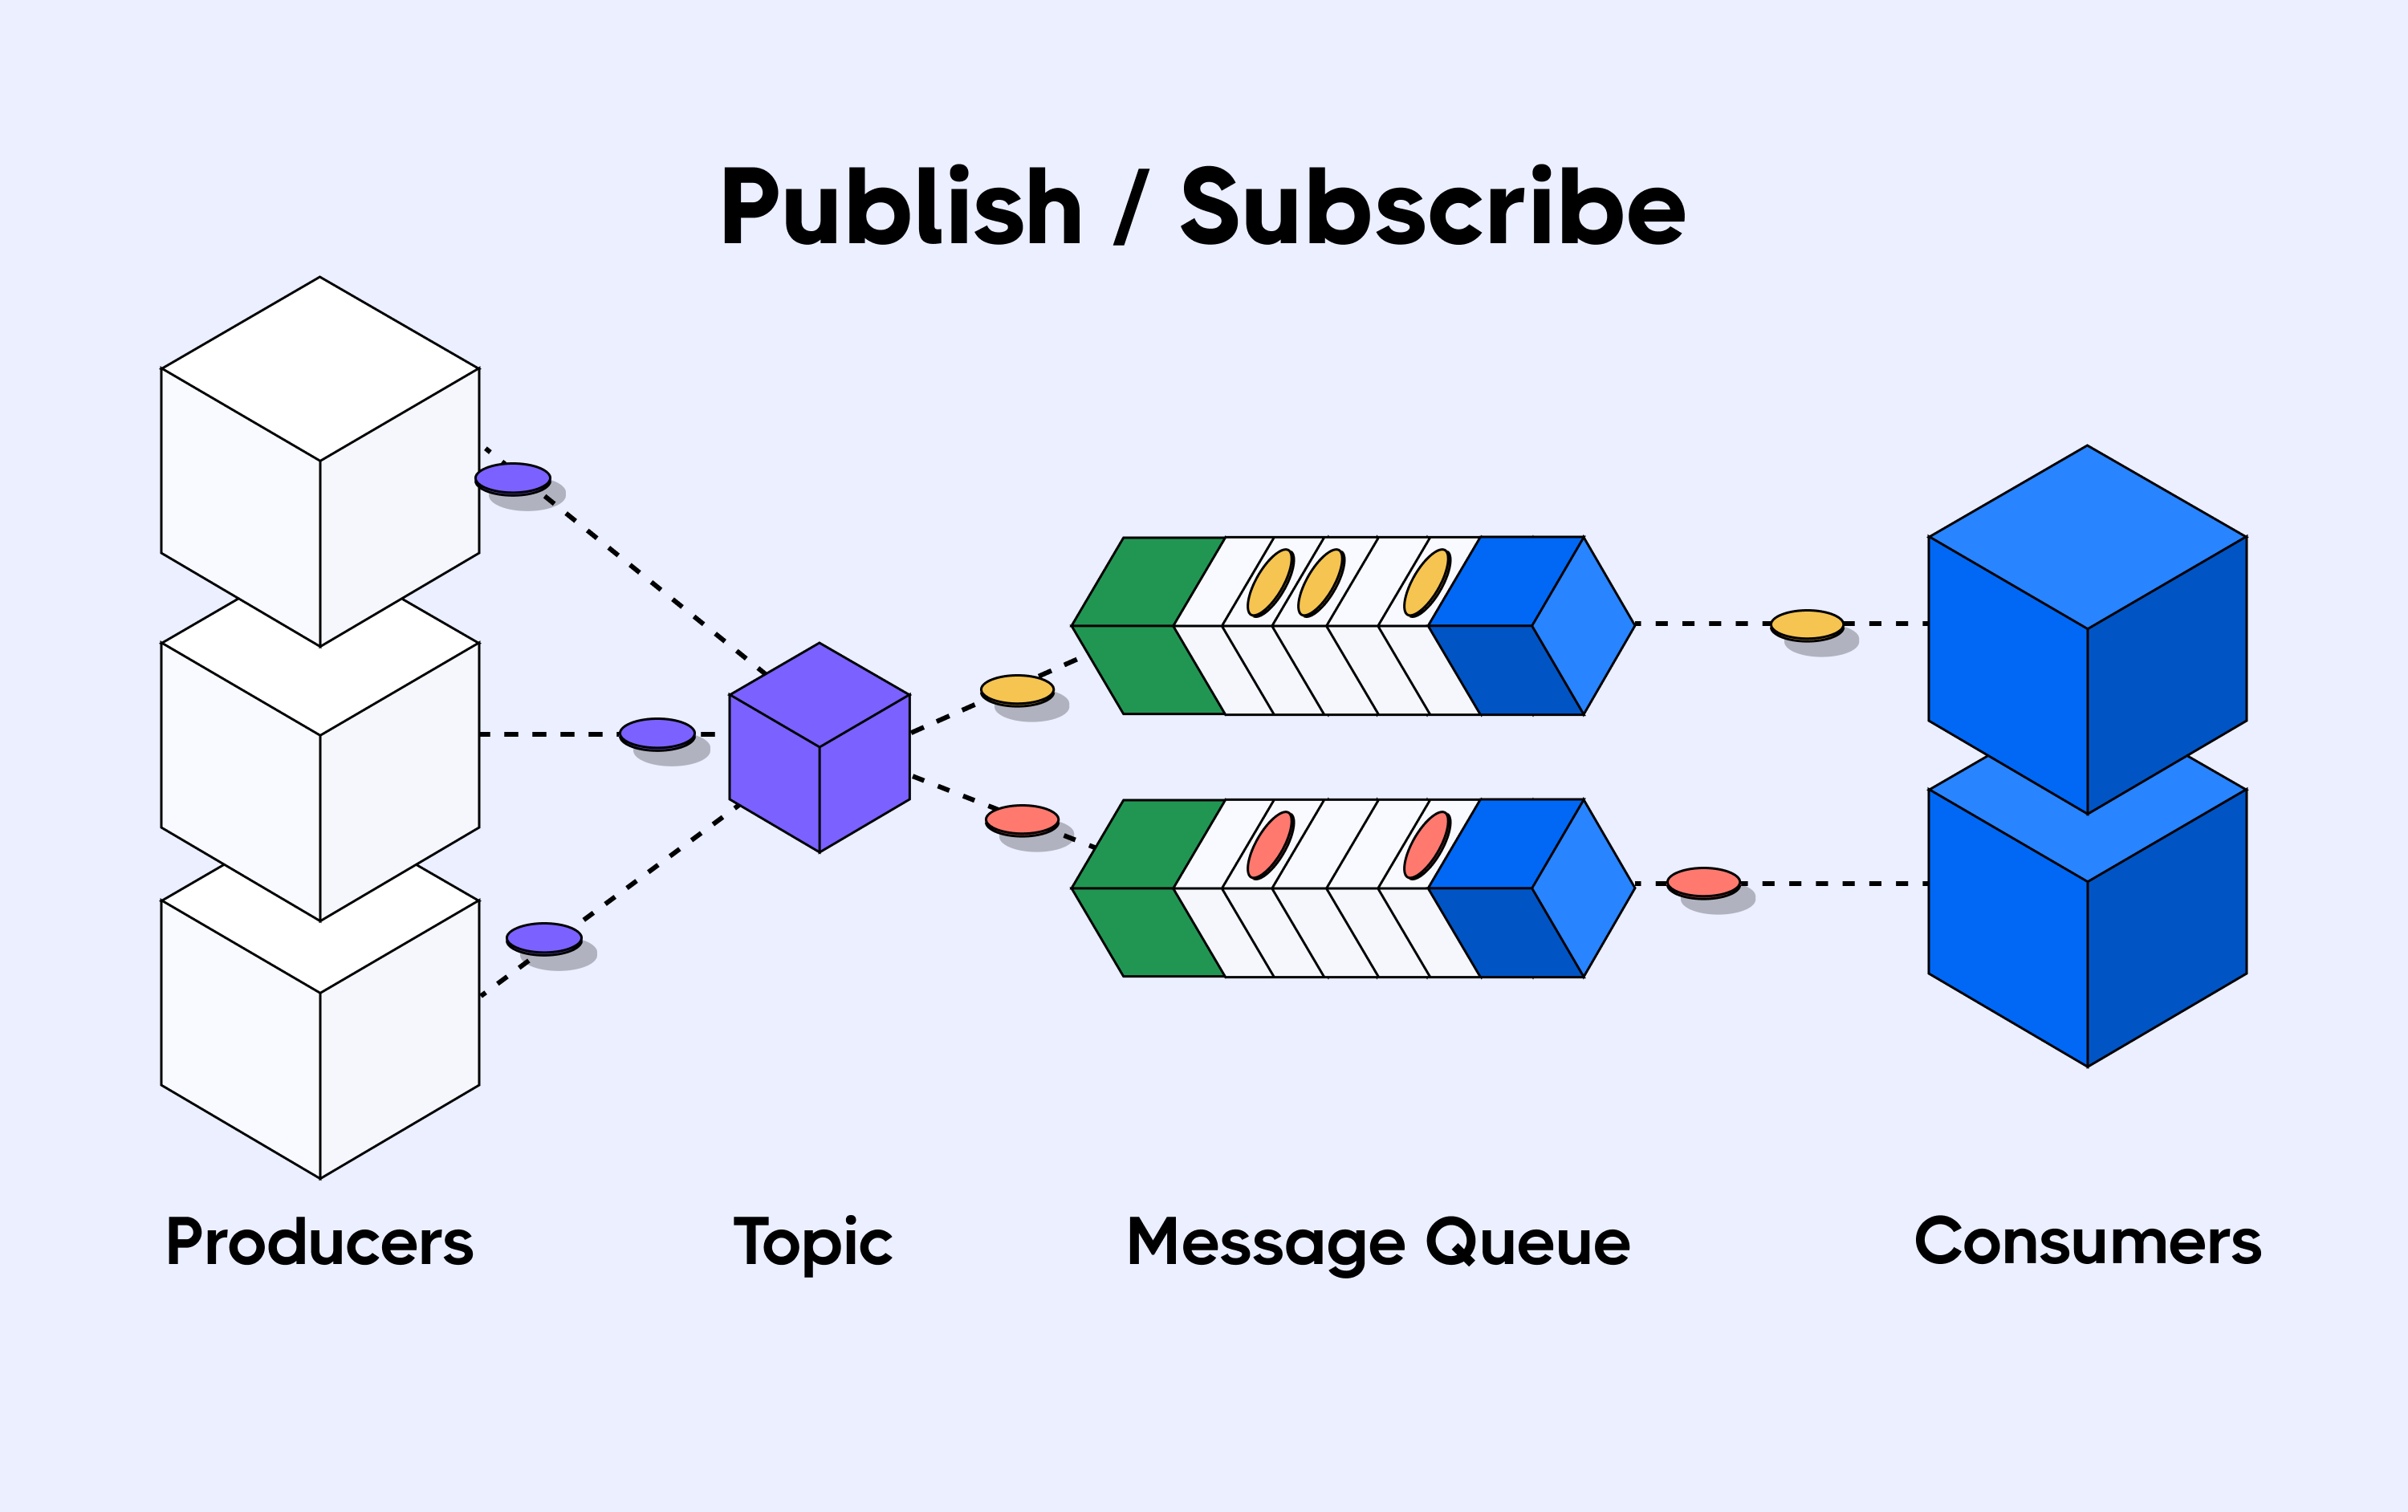 Publish and subscribe method